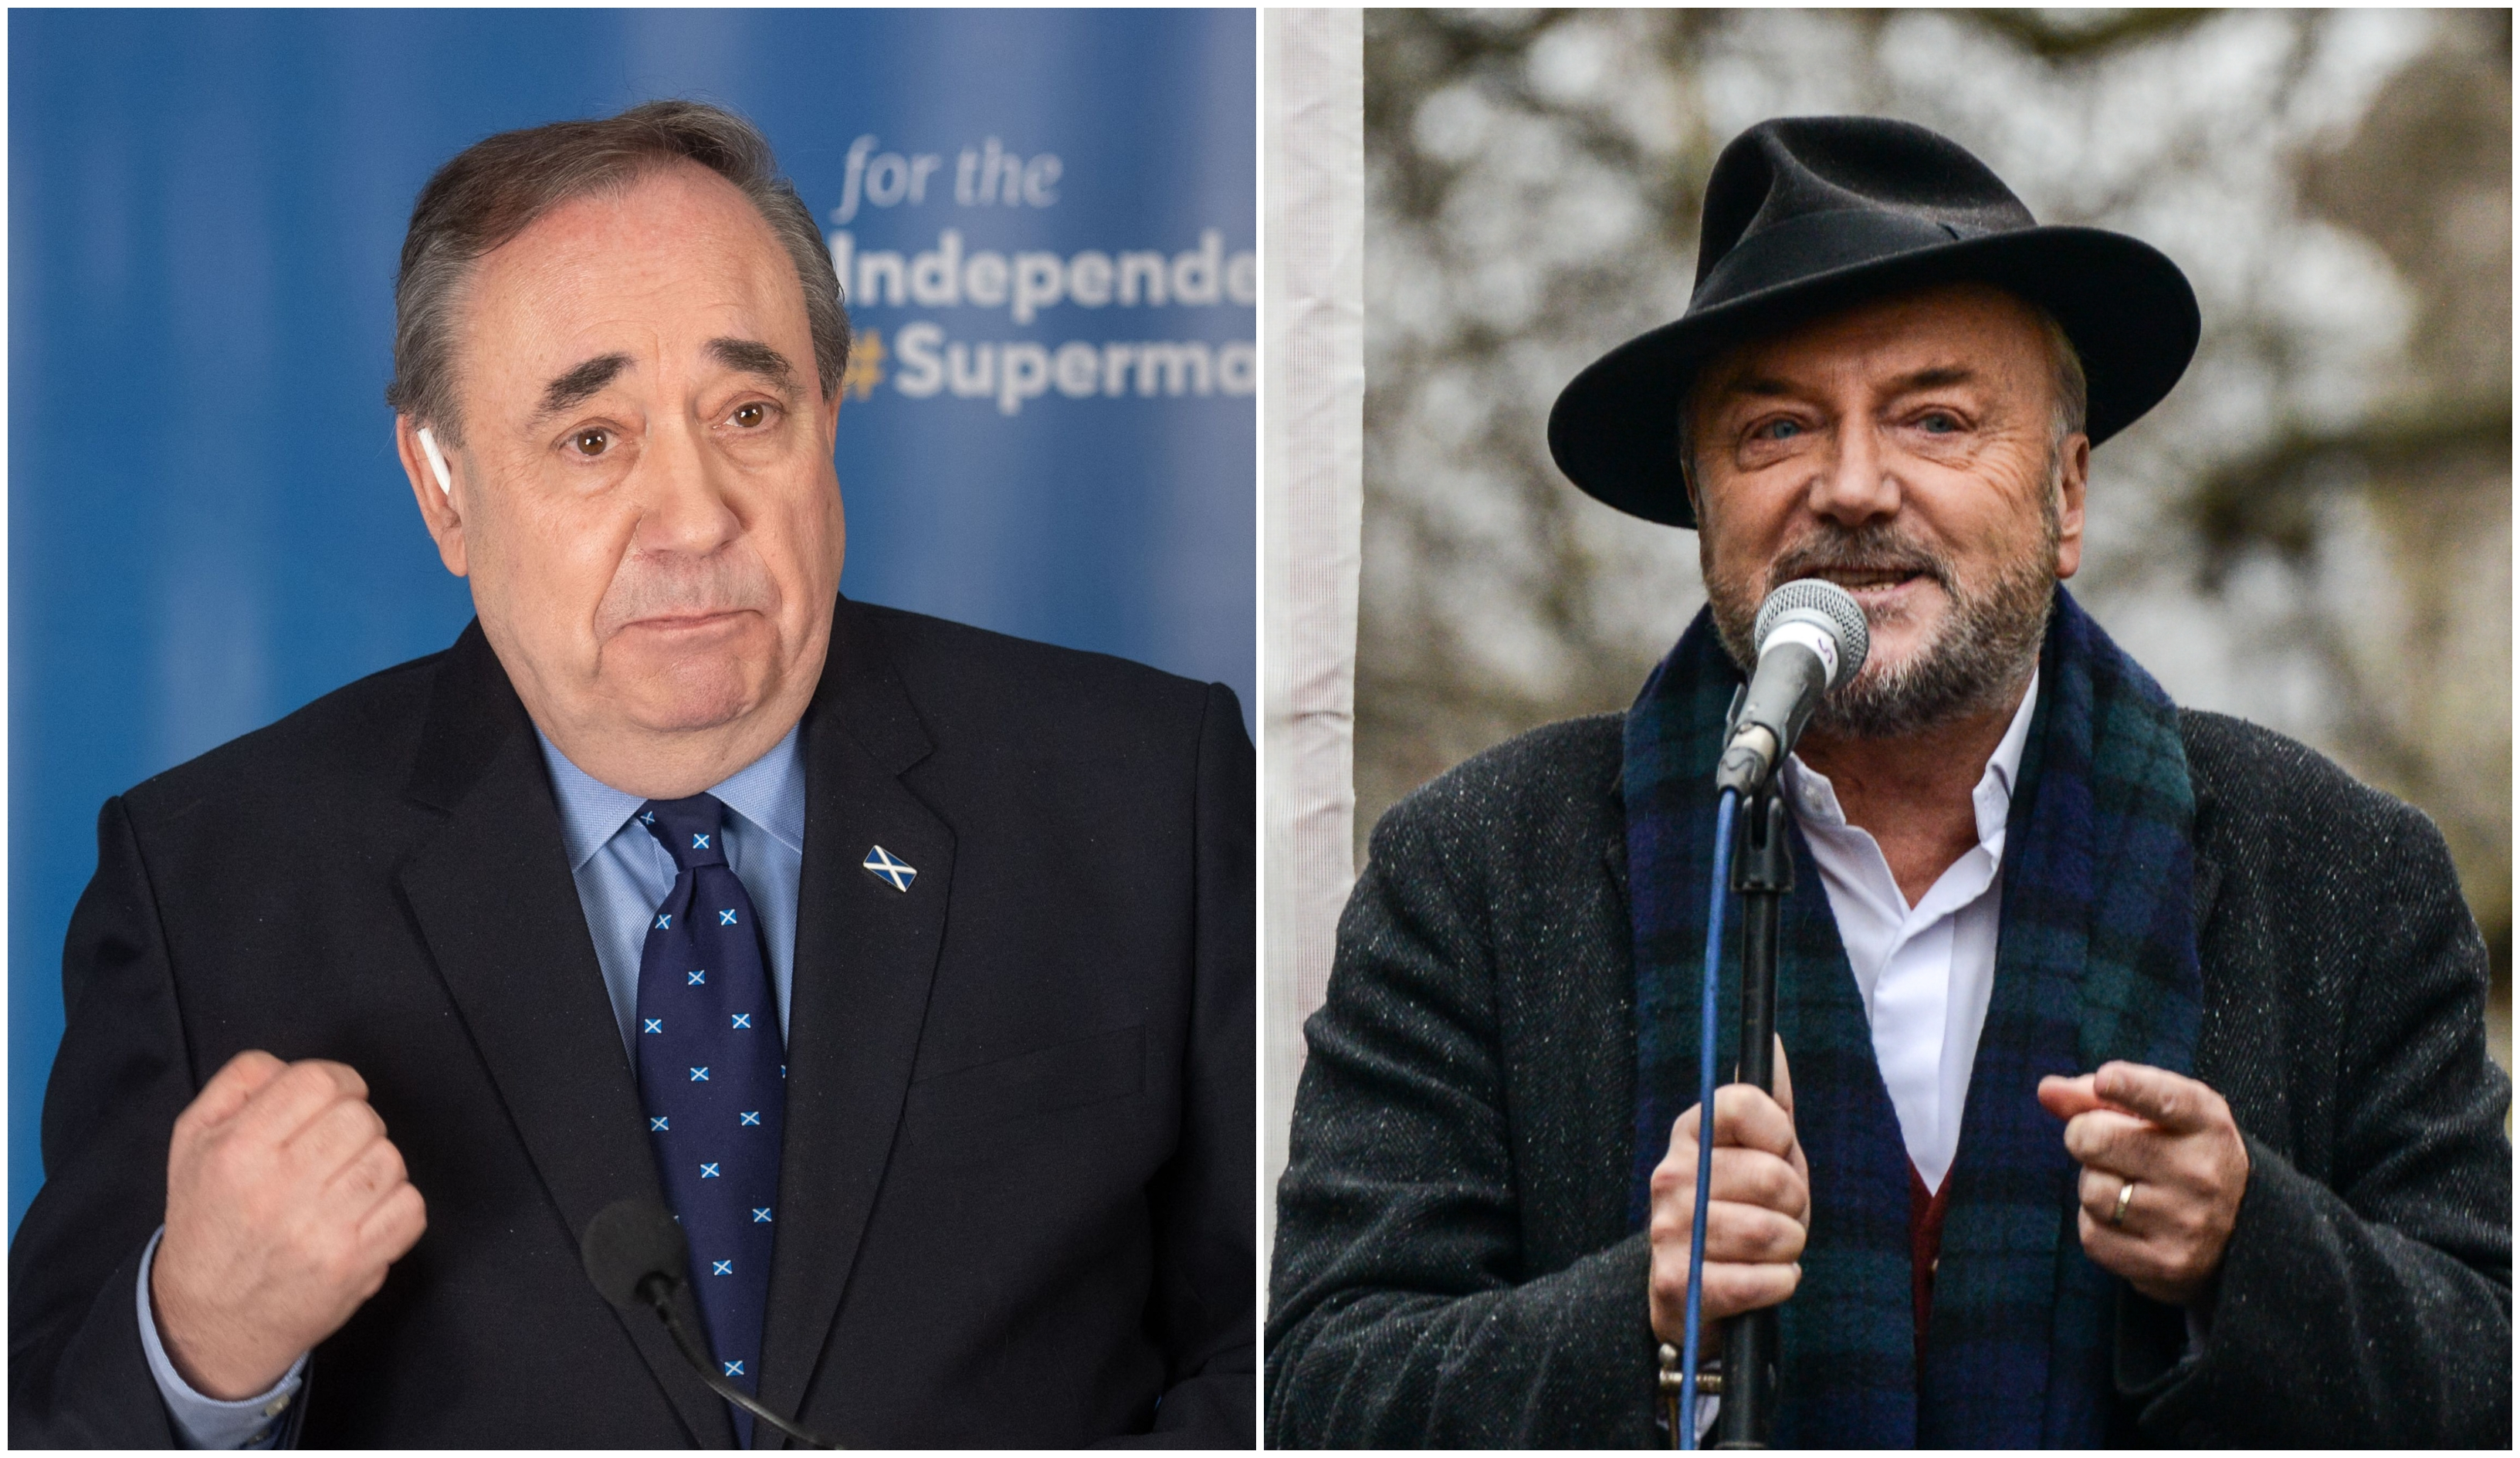 Salmond and Galloway are the worst of both worlds